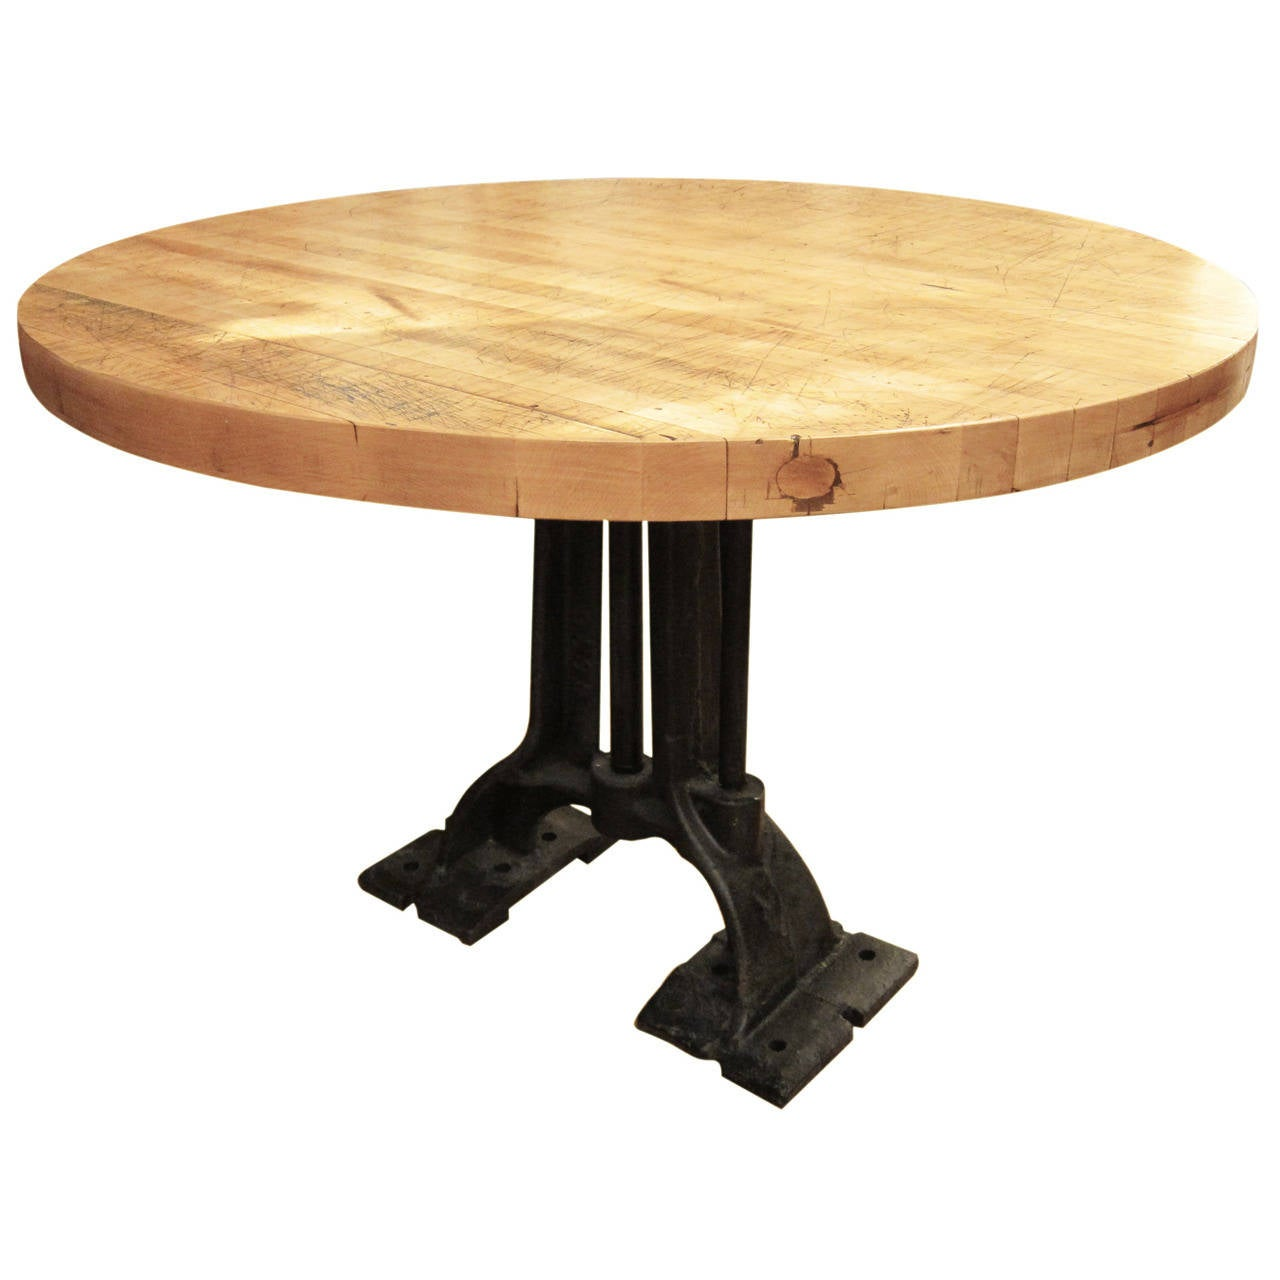 Refurbished Round Butcher Block Table with Heavy Cast Iron  : 1947612l from www.1stdibs.com size 1280 x 1280 jpeg 81kB